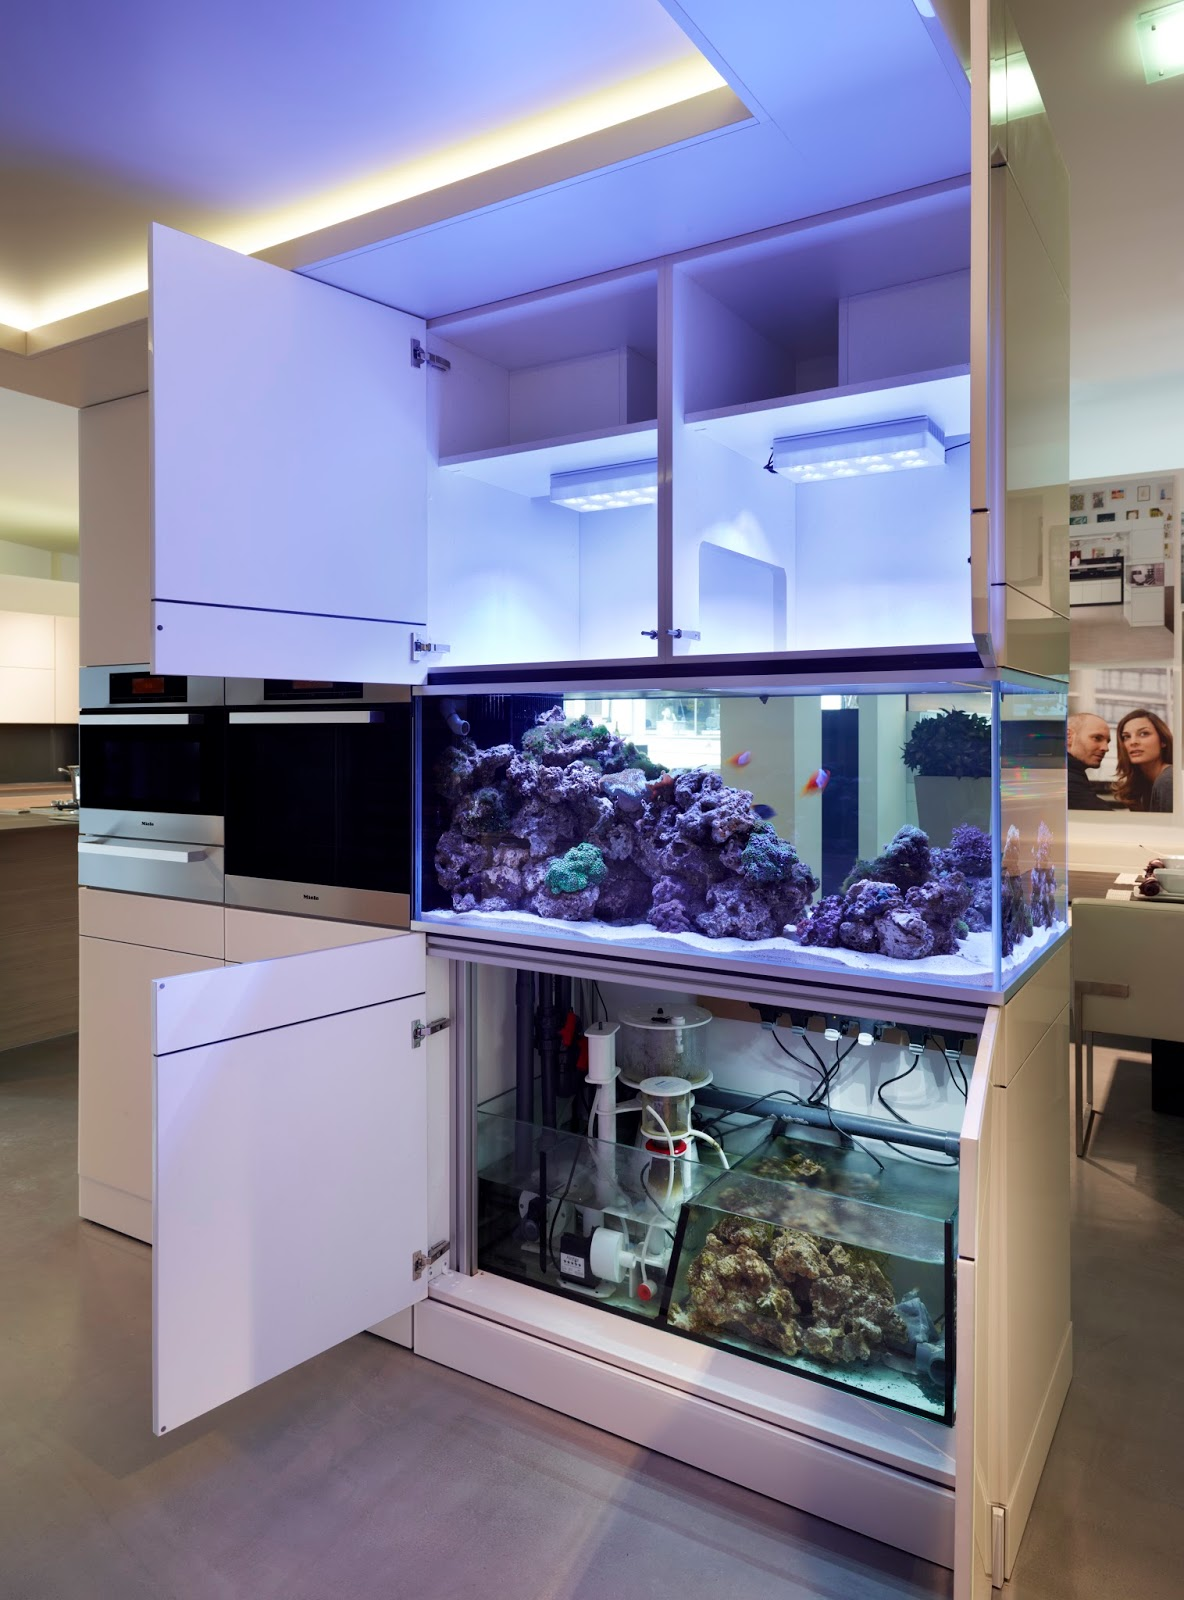 Fish tank in kitchen - The